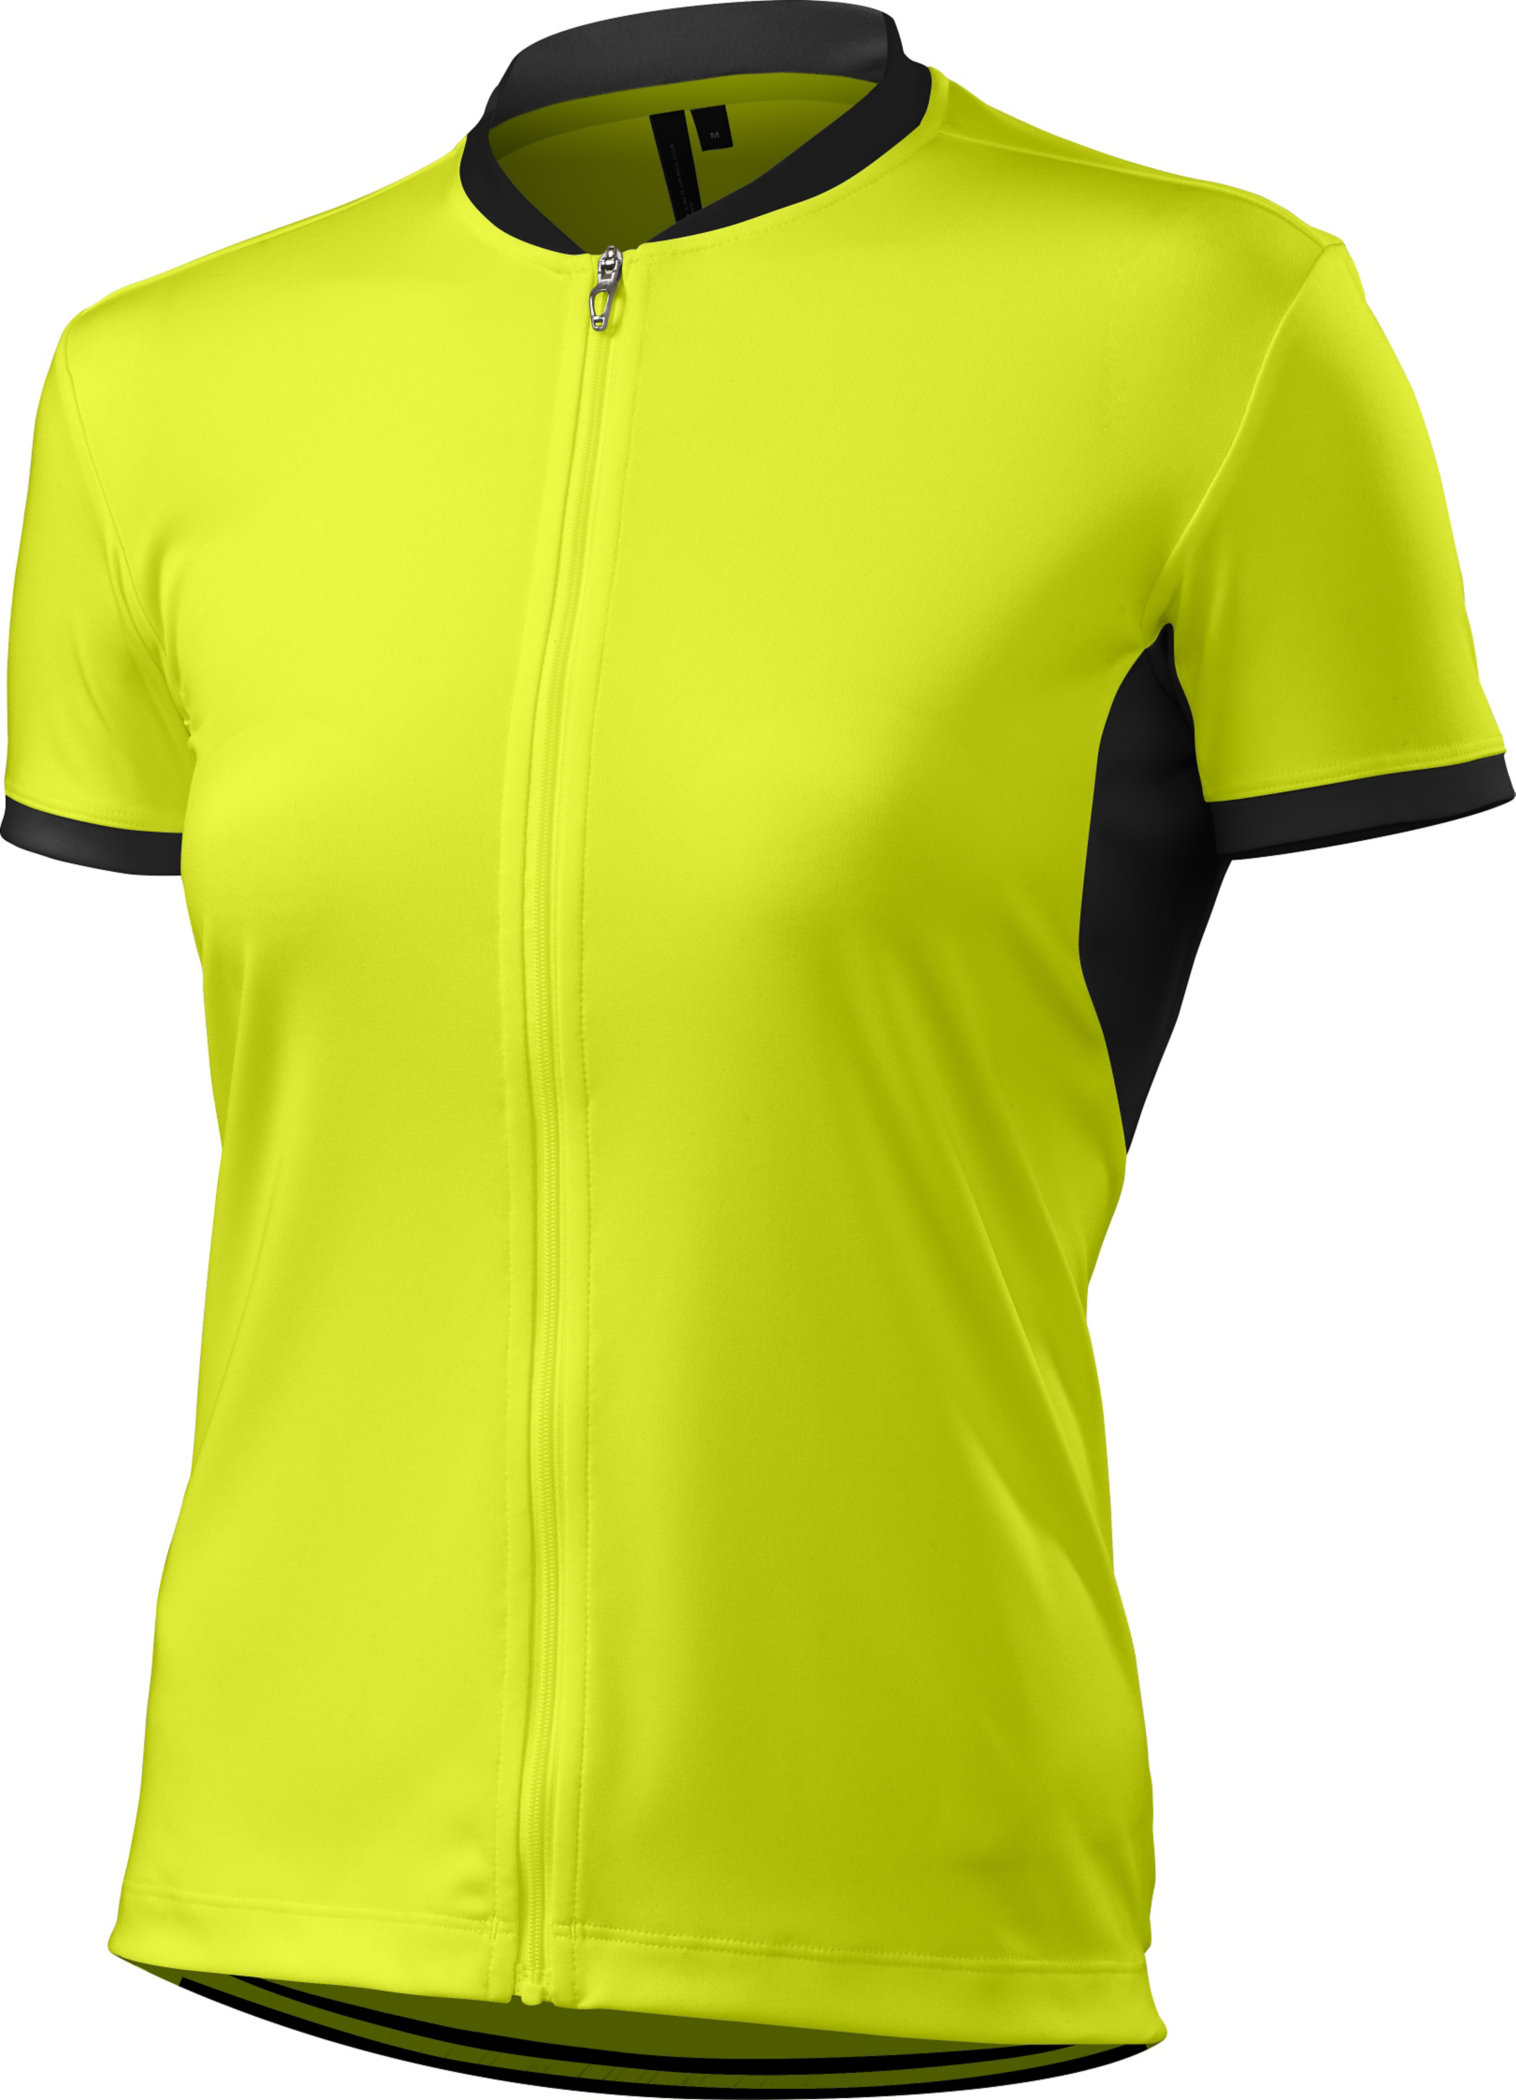 Specialized Women´s RBX Sport Jersey Neon Yellow/Black Large - Alpha Bikes